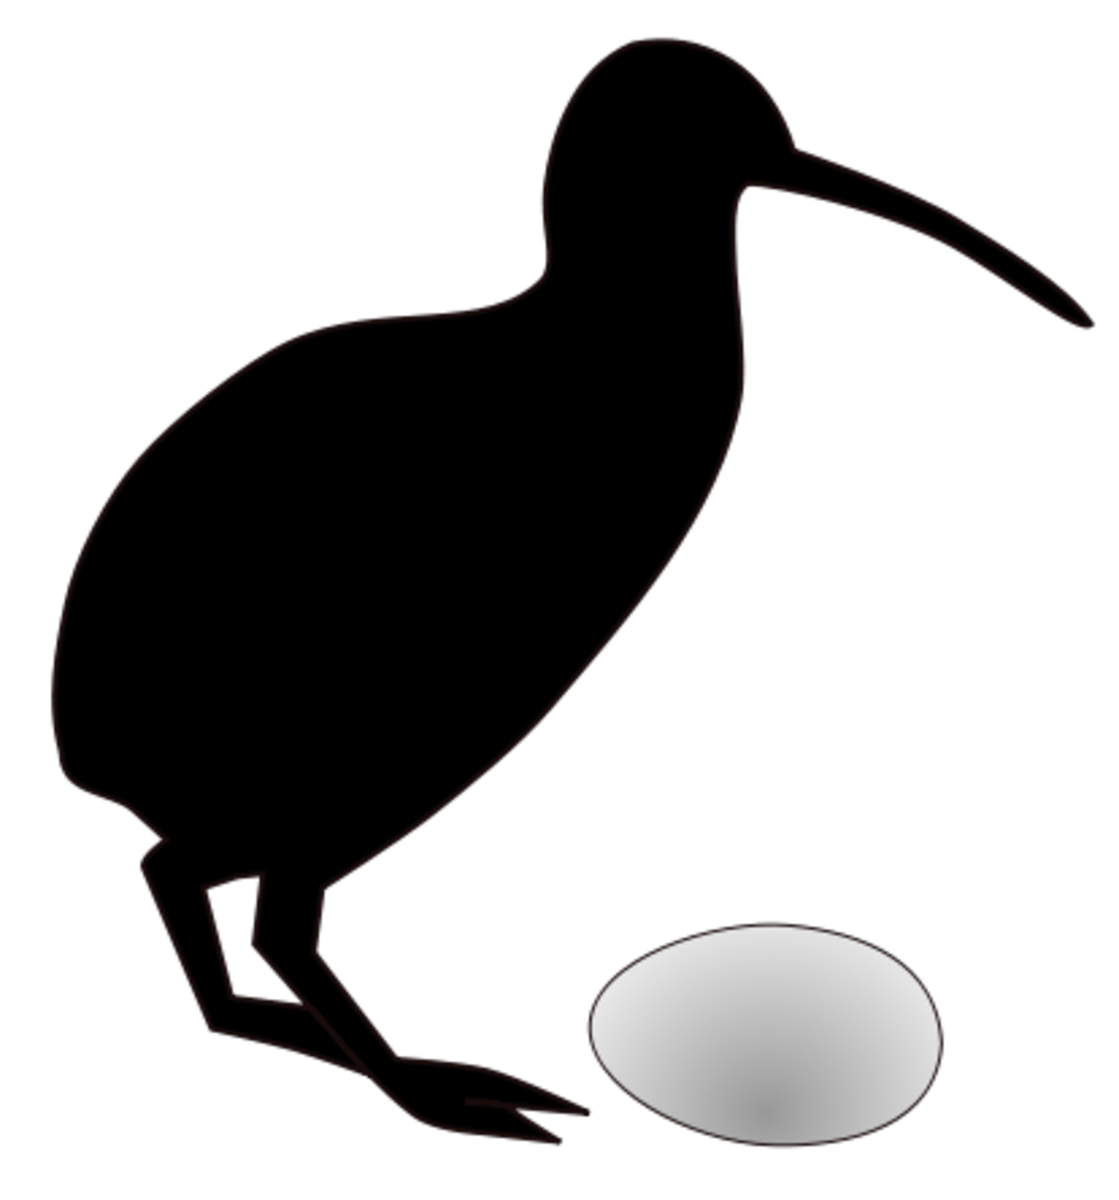 This picture shows just how large the kiwi's egg is in relation to the bird.